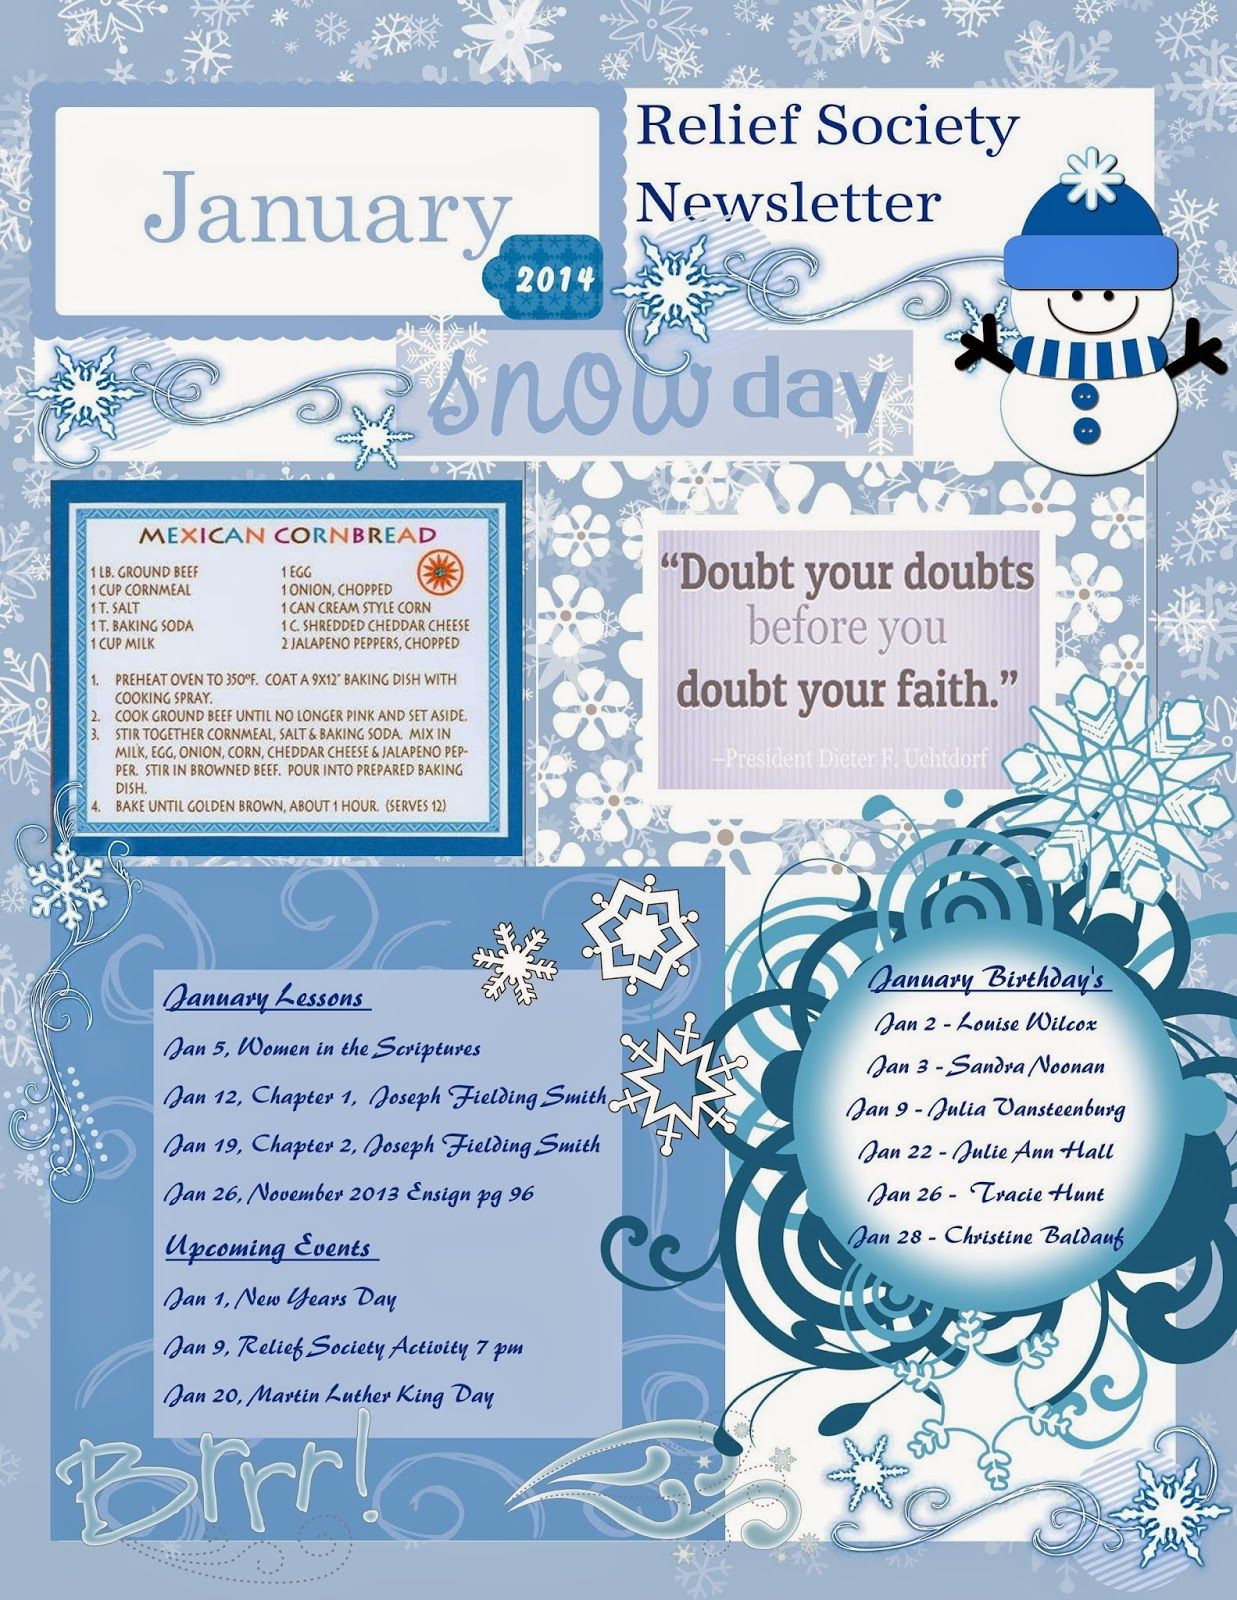 f2cb35d899029e3a9471296eecb19662 January Newsletter Template Clipart on classroom weekly, fun company, free office, microsoft publisher, free printable monthly, microsoft word,